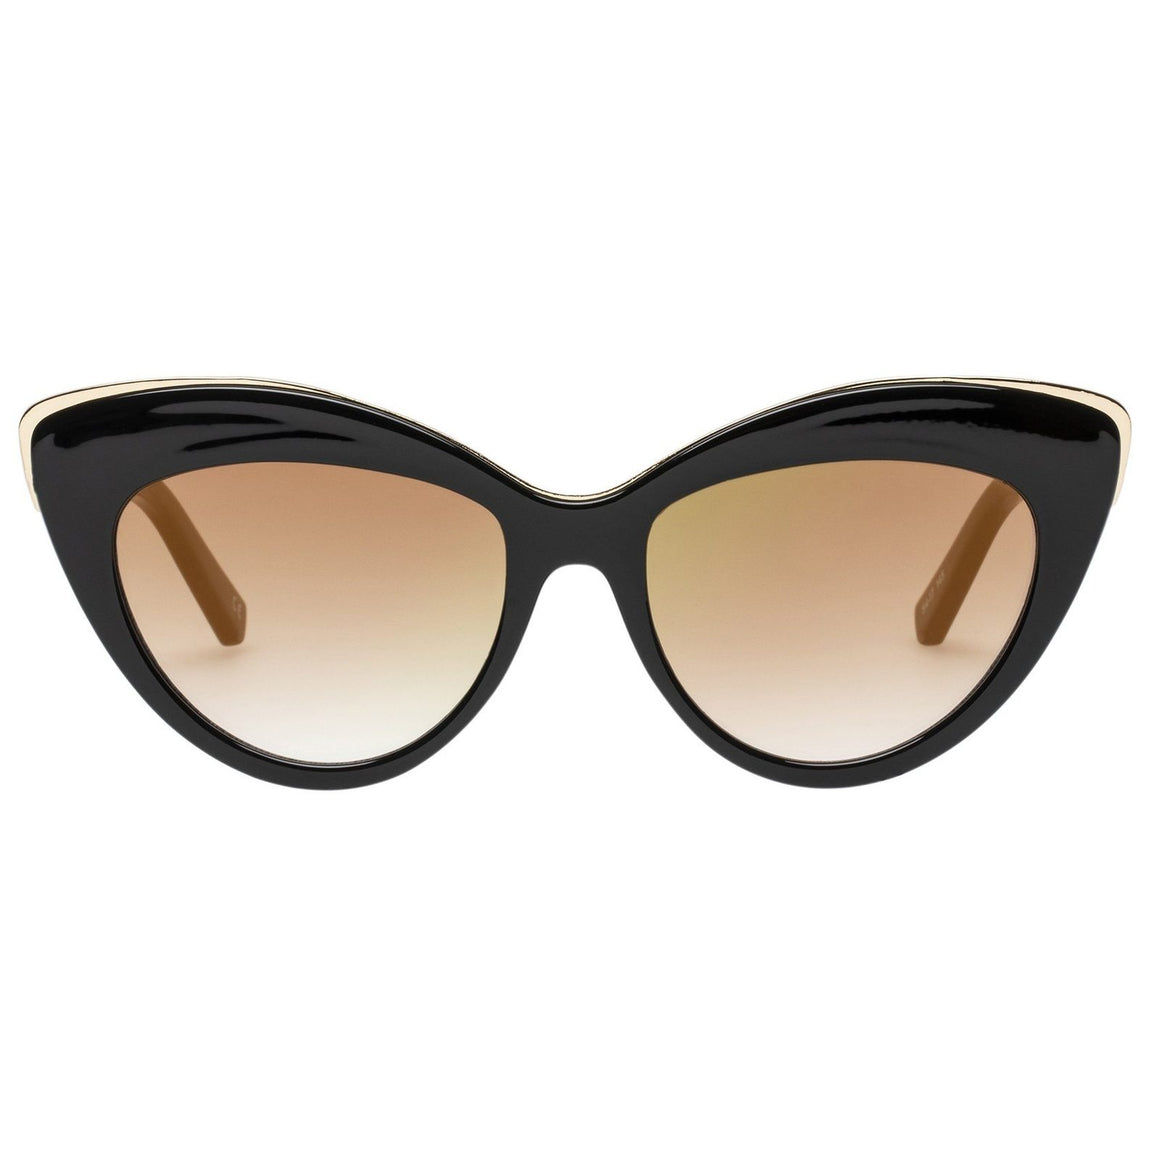 Beautiful Stranger - Black/Brown | Shop Le Specs at Wallace&Gibbs in Arrowtown, NZ